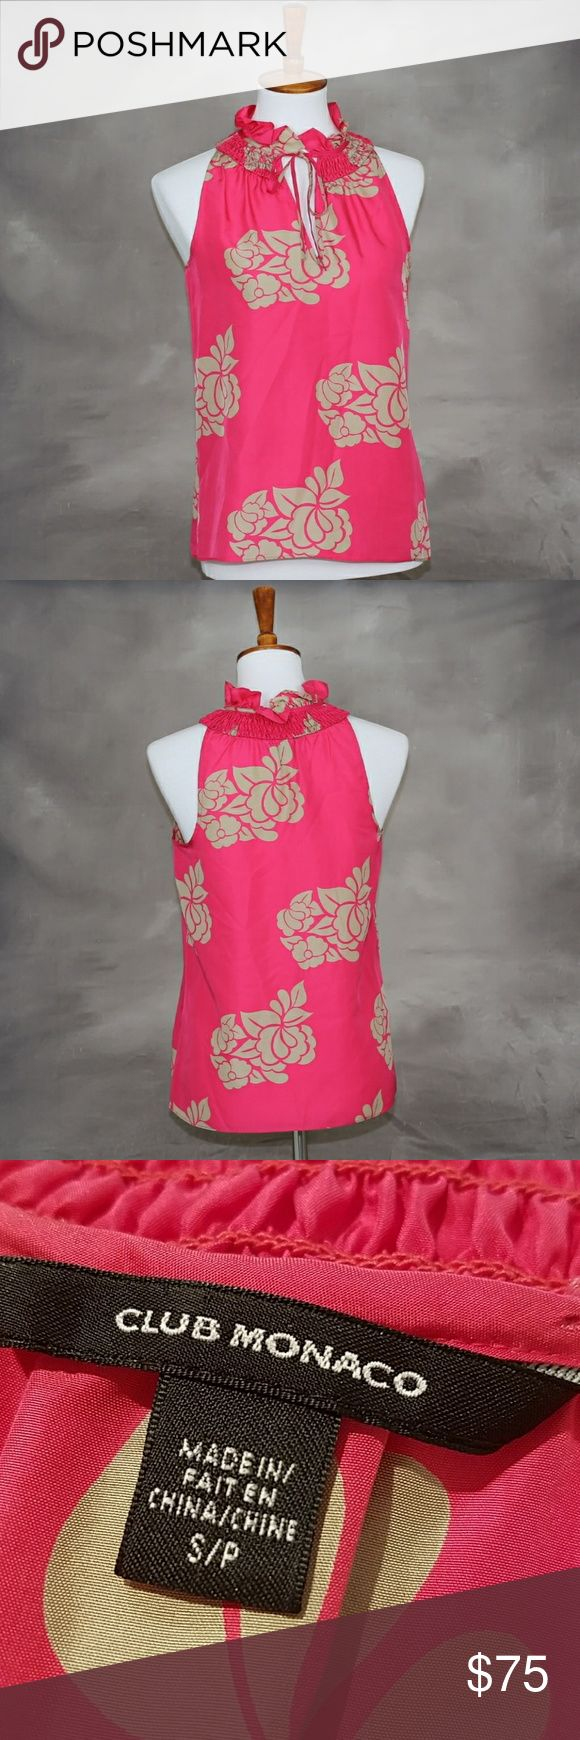 Final sale $FIRM Club Monaco 100% silk blouse Club Monaco 100% silk sleeveless blouse. Hot pink with tan flowers. Ruffle neck with front tie. Excellent like new condition. Club Monaco Tops Blouses